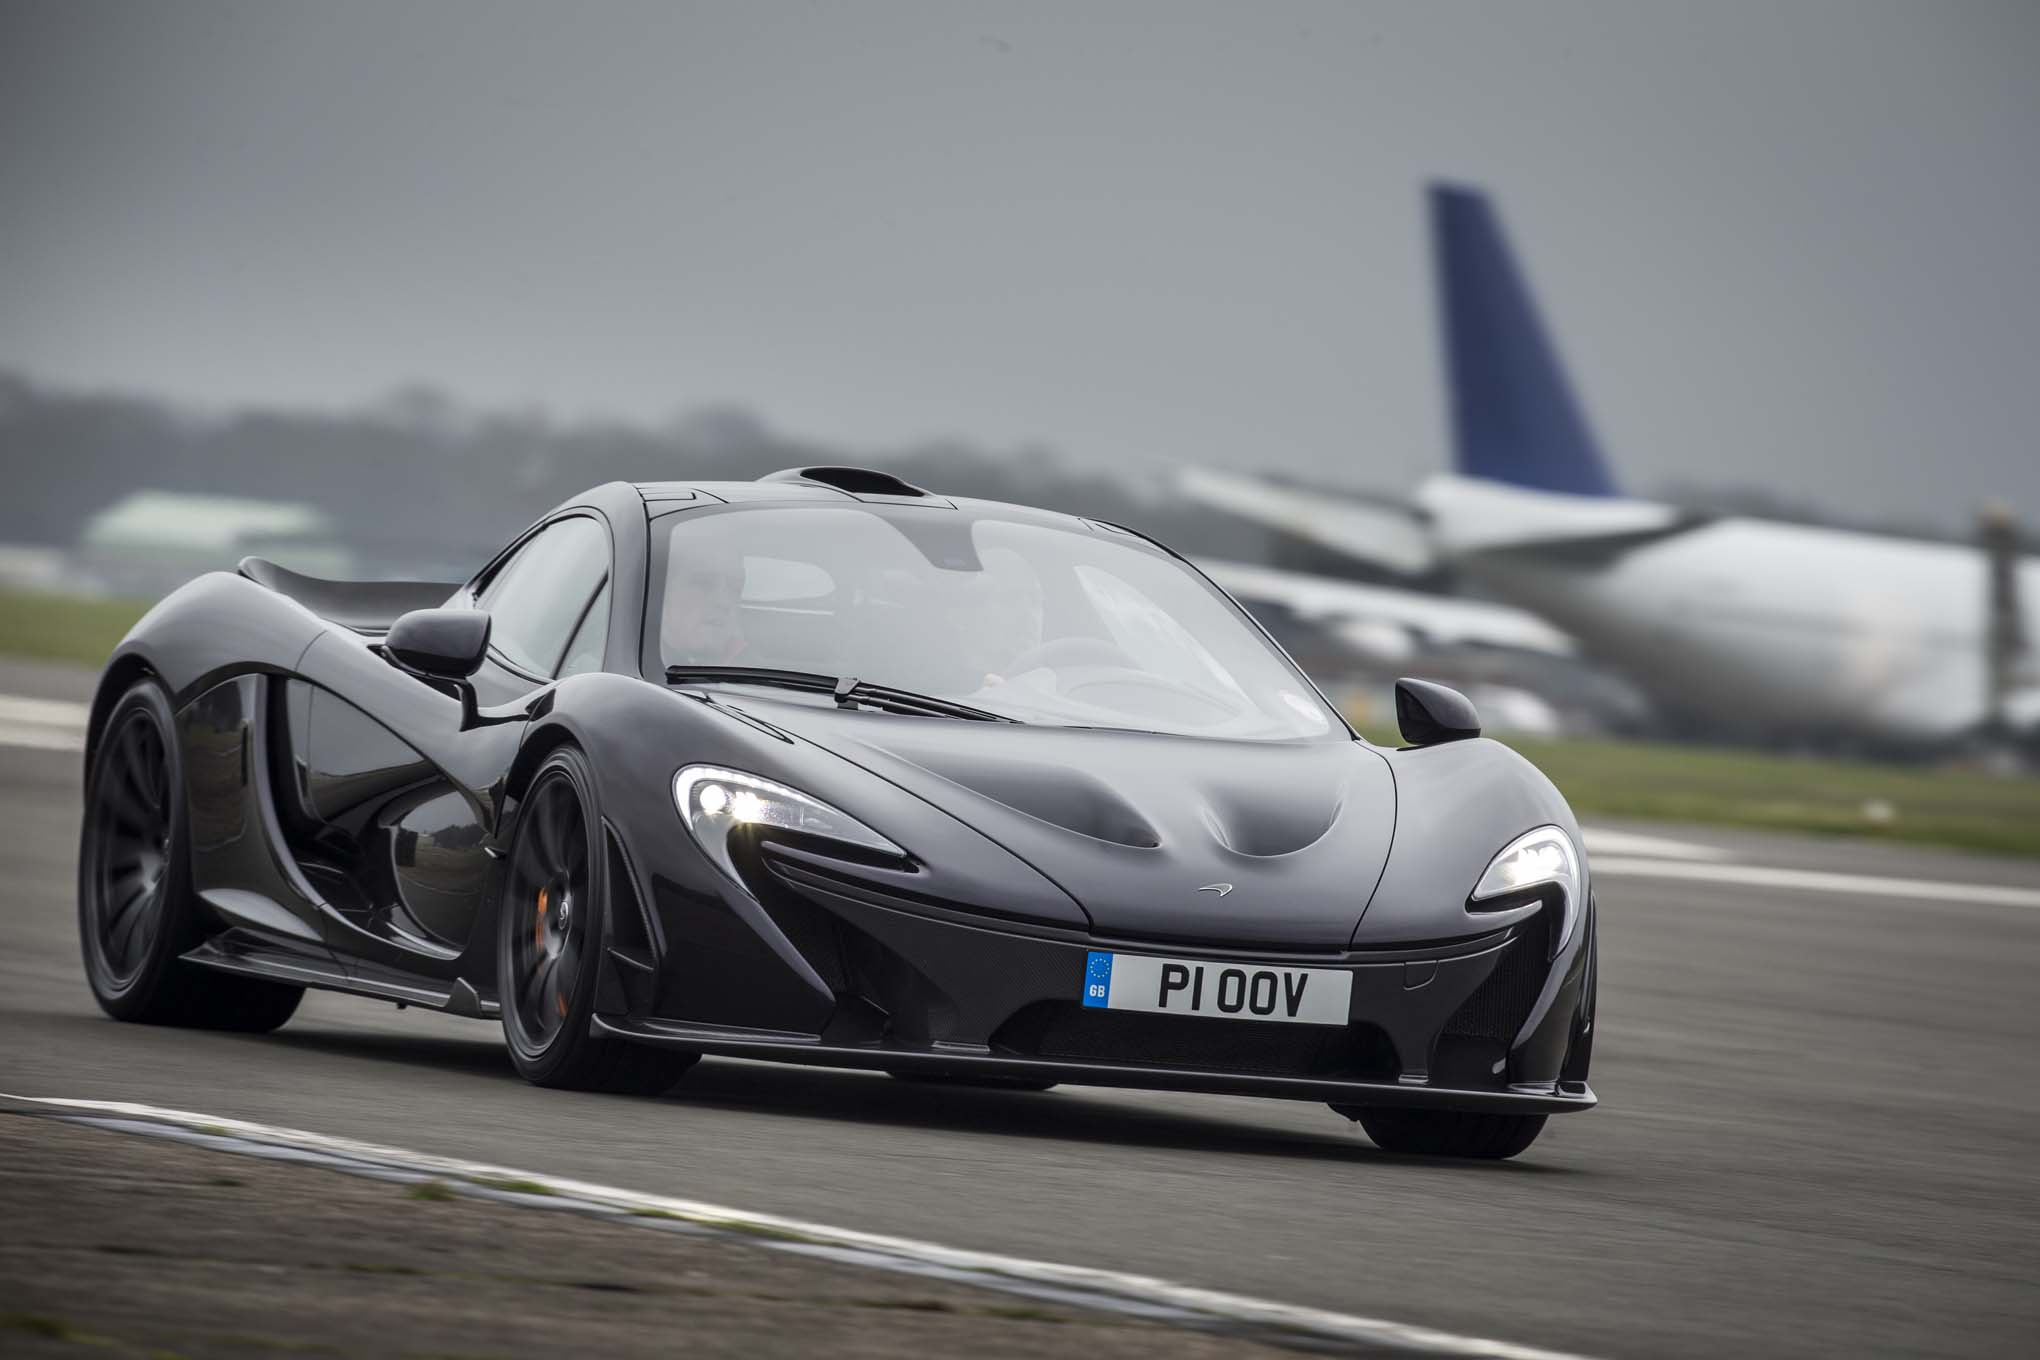 https://st.automobilemag.com/uploads/sites/11/2014/03/2014-Mclaren-P1-black-front-end-in-motion-02.jpg